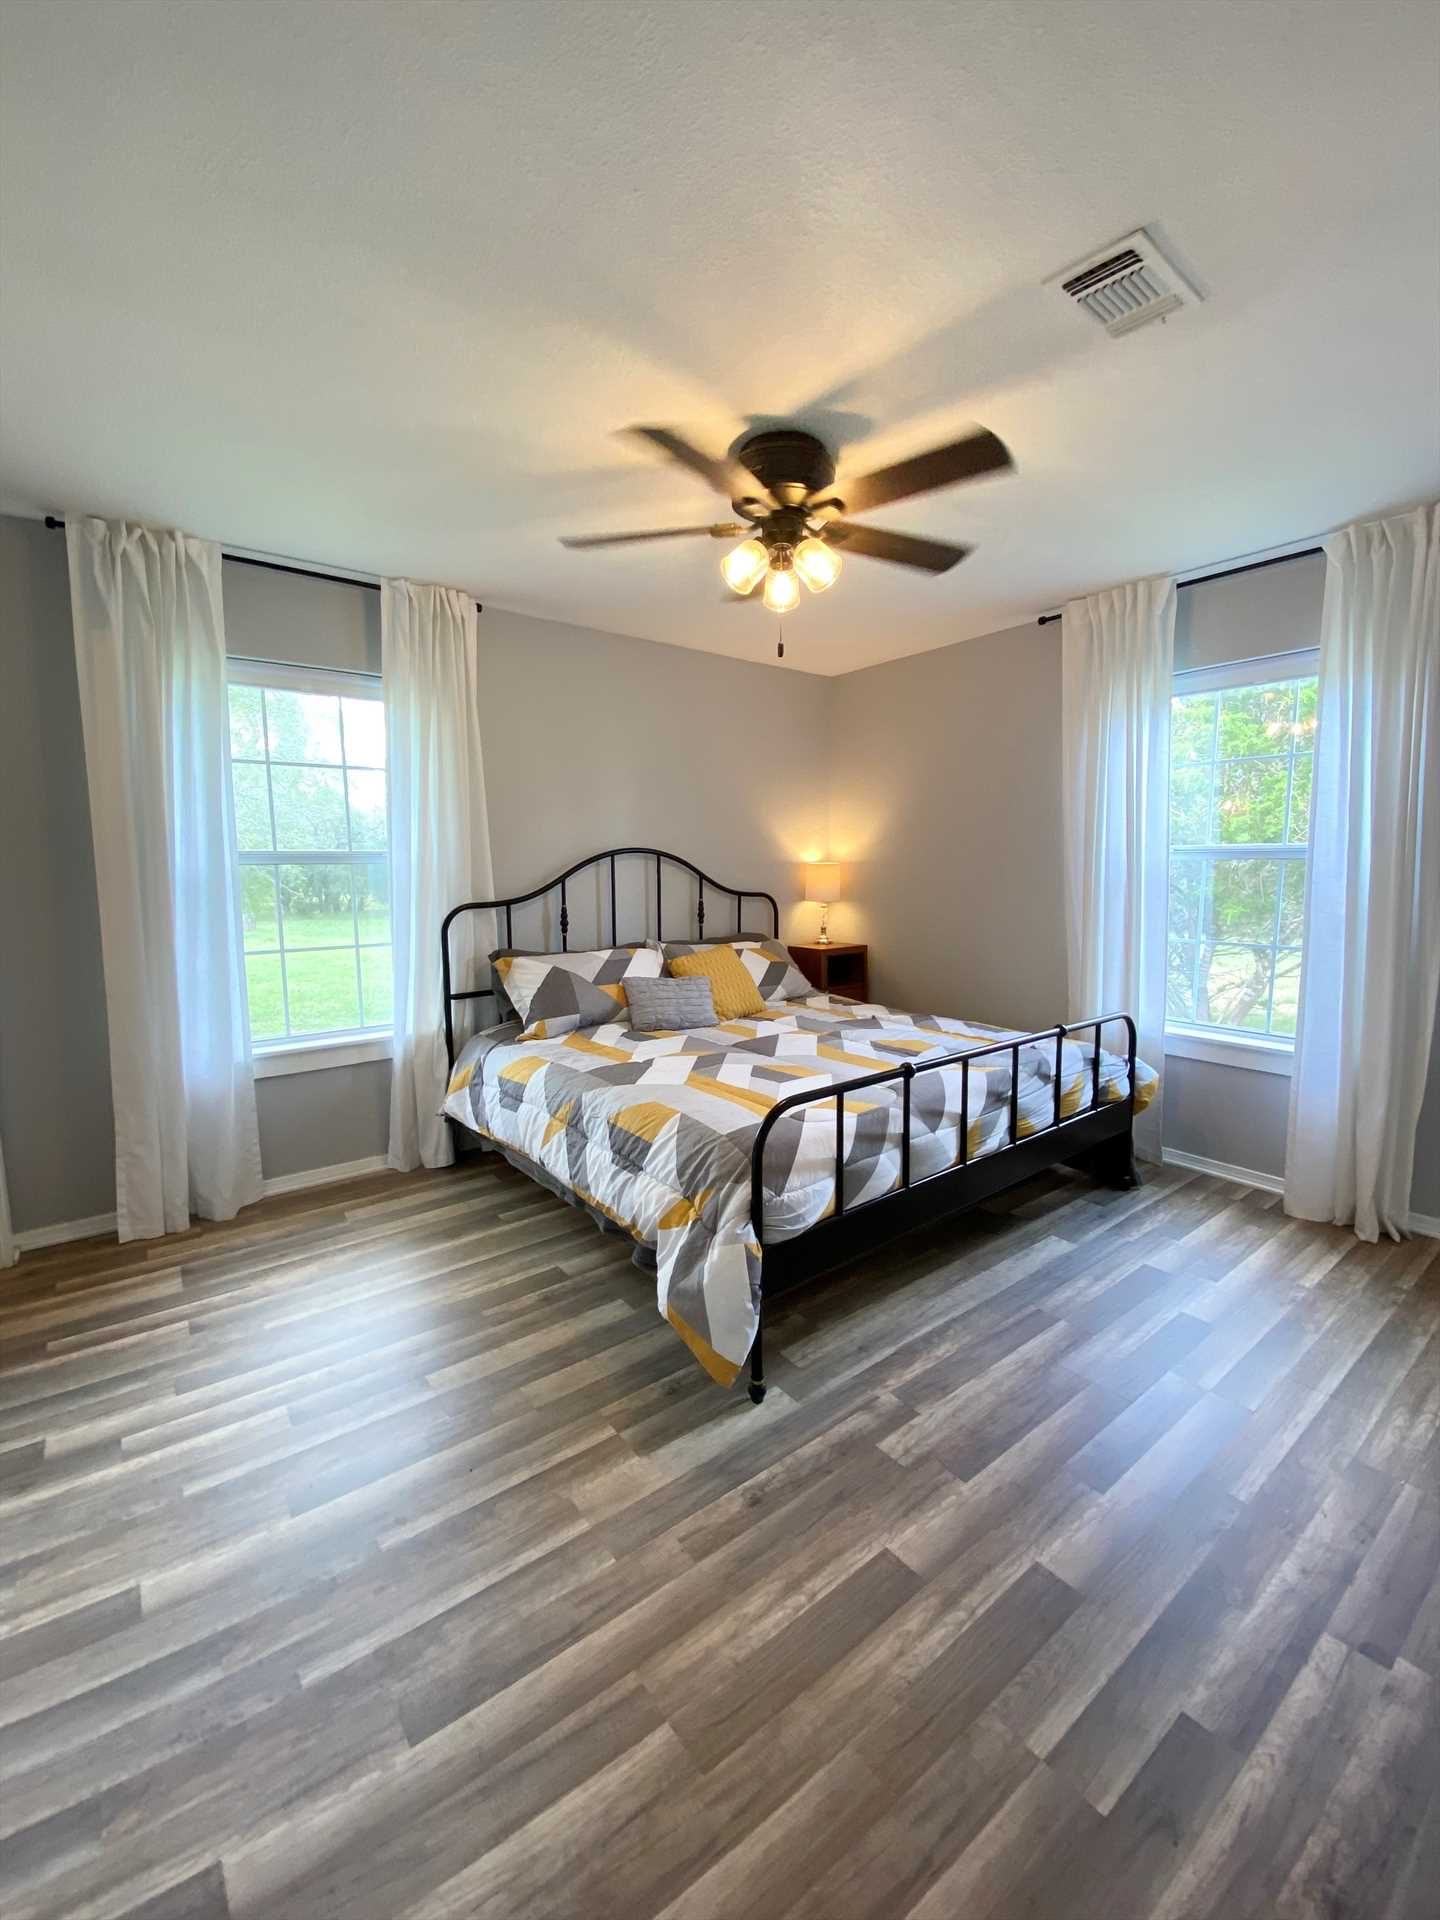 What a comfy corner in which to catch your Z's! All the beds at the Lake Retreat come with clean and comfortable linens.